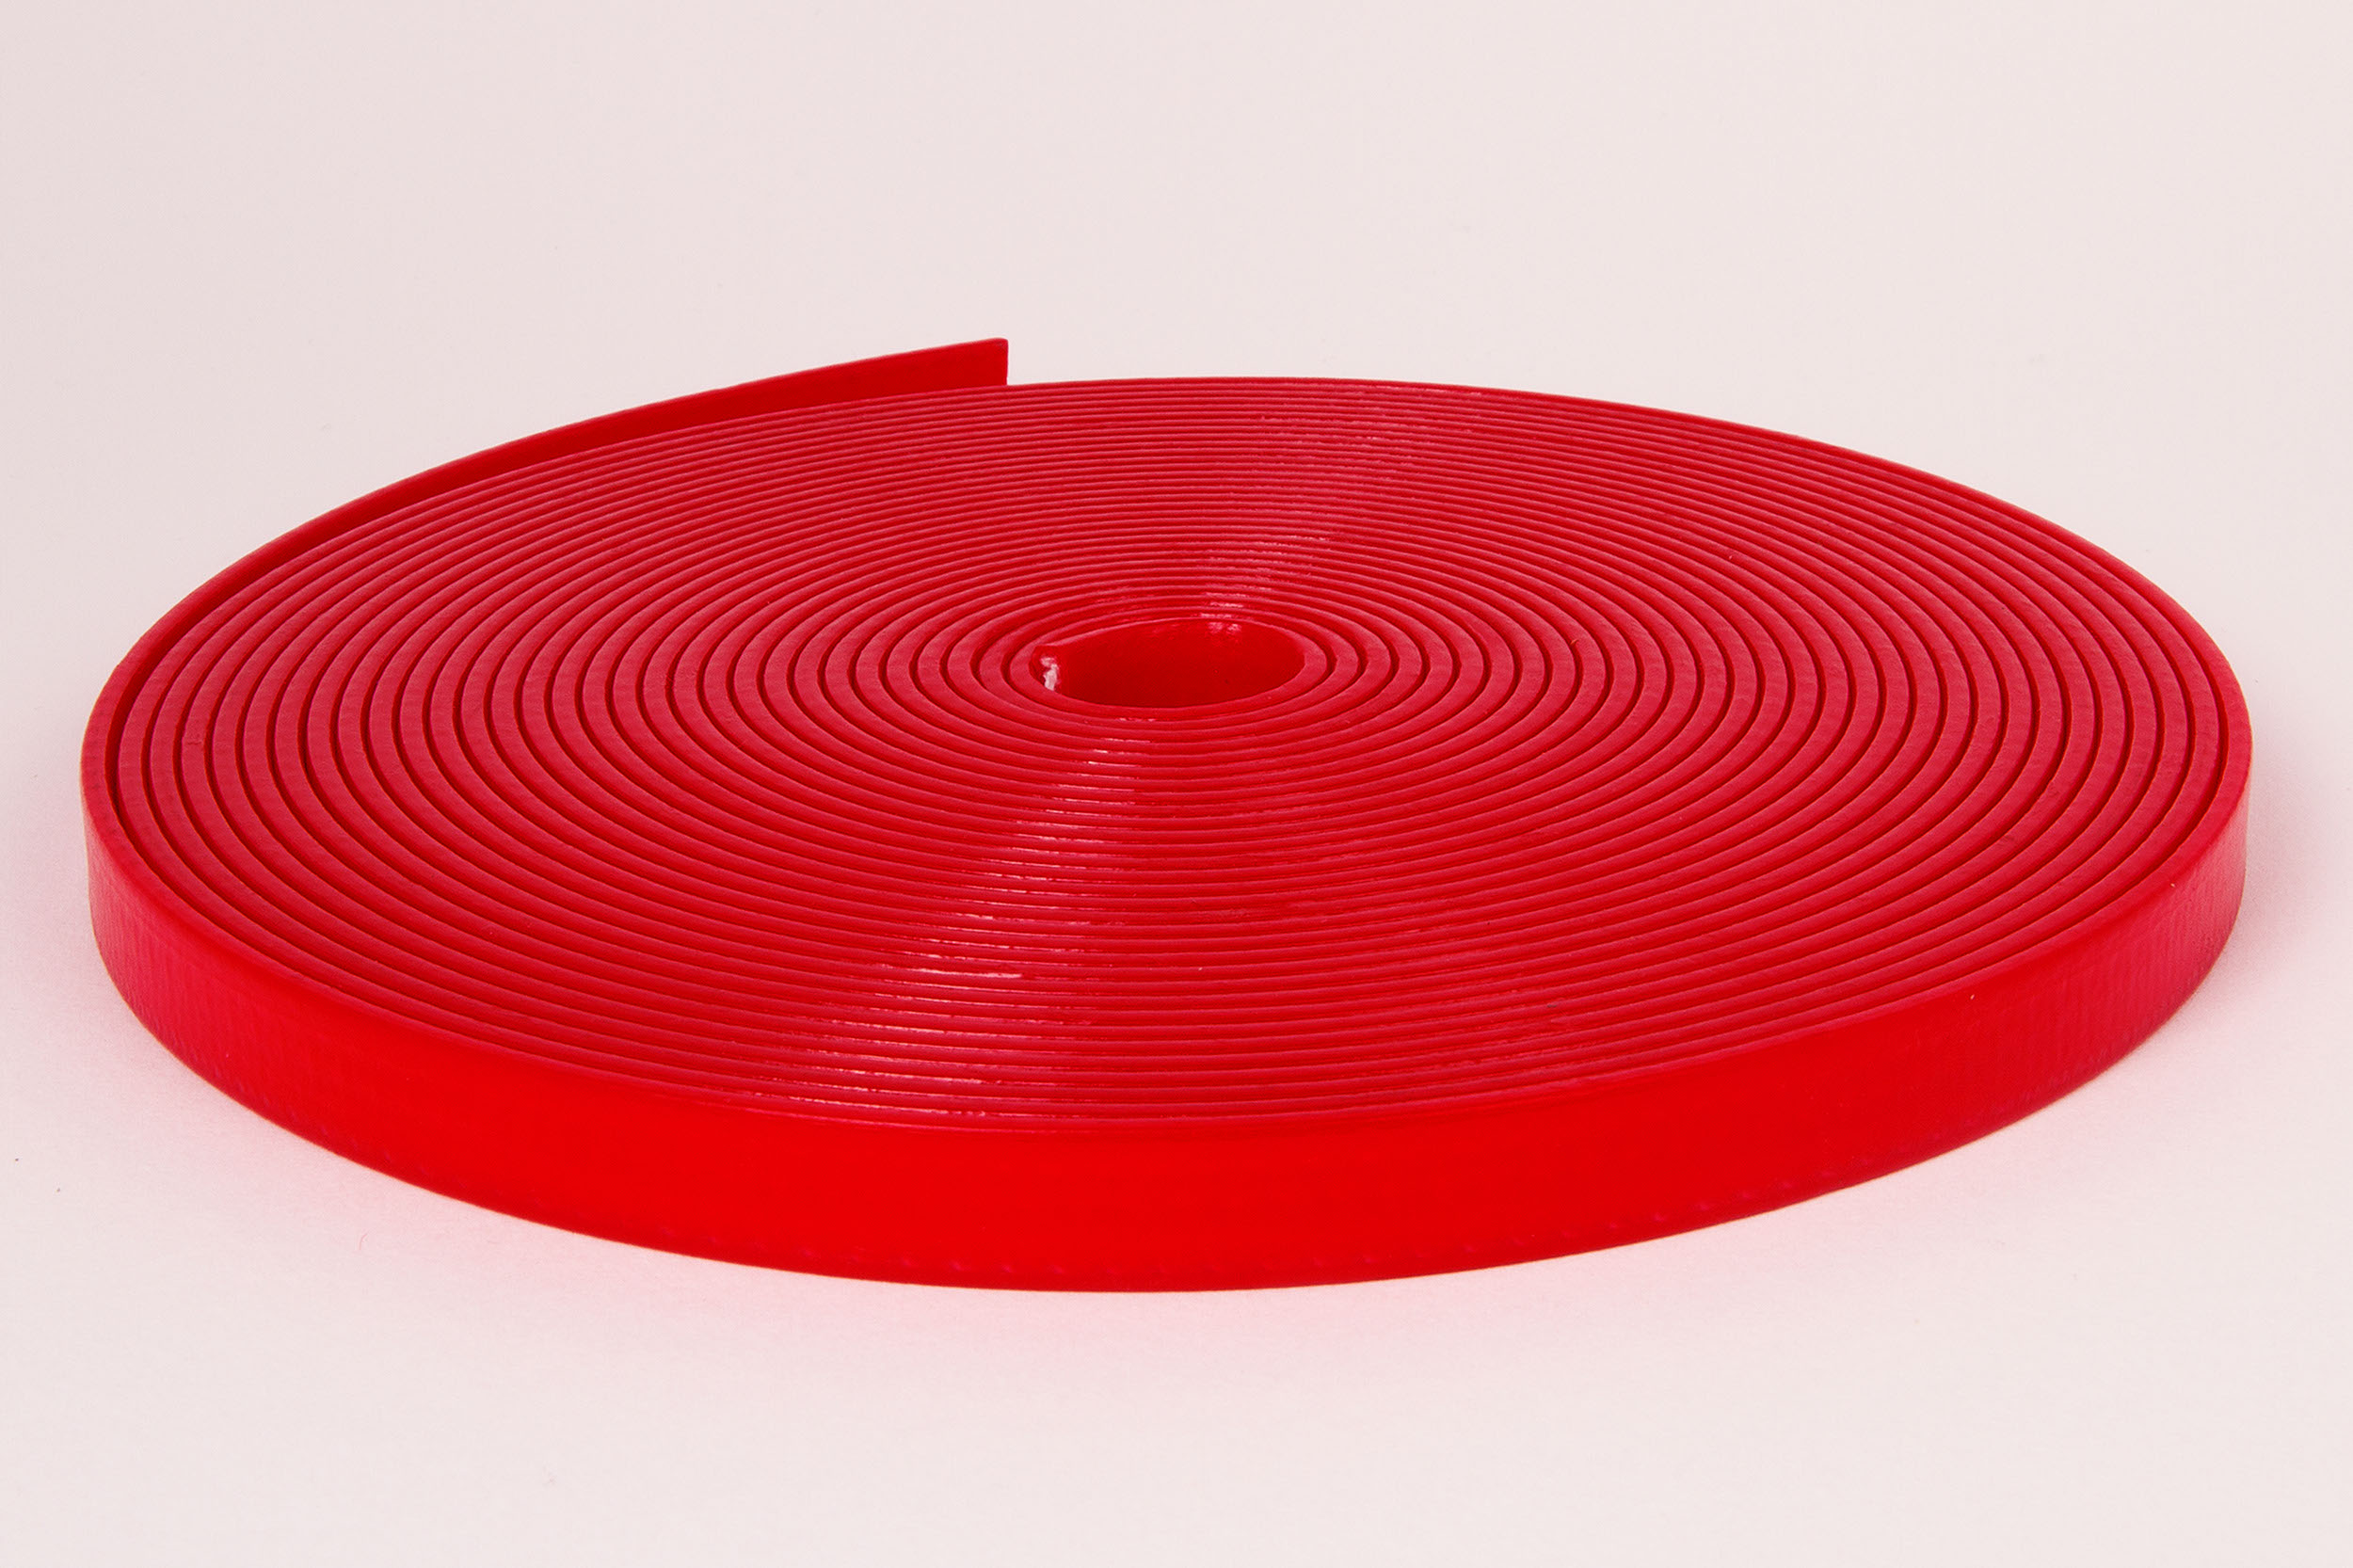 PVC-Coated-Webbing-12mm-Red 01.jpg